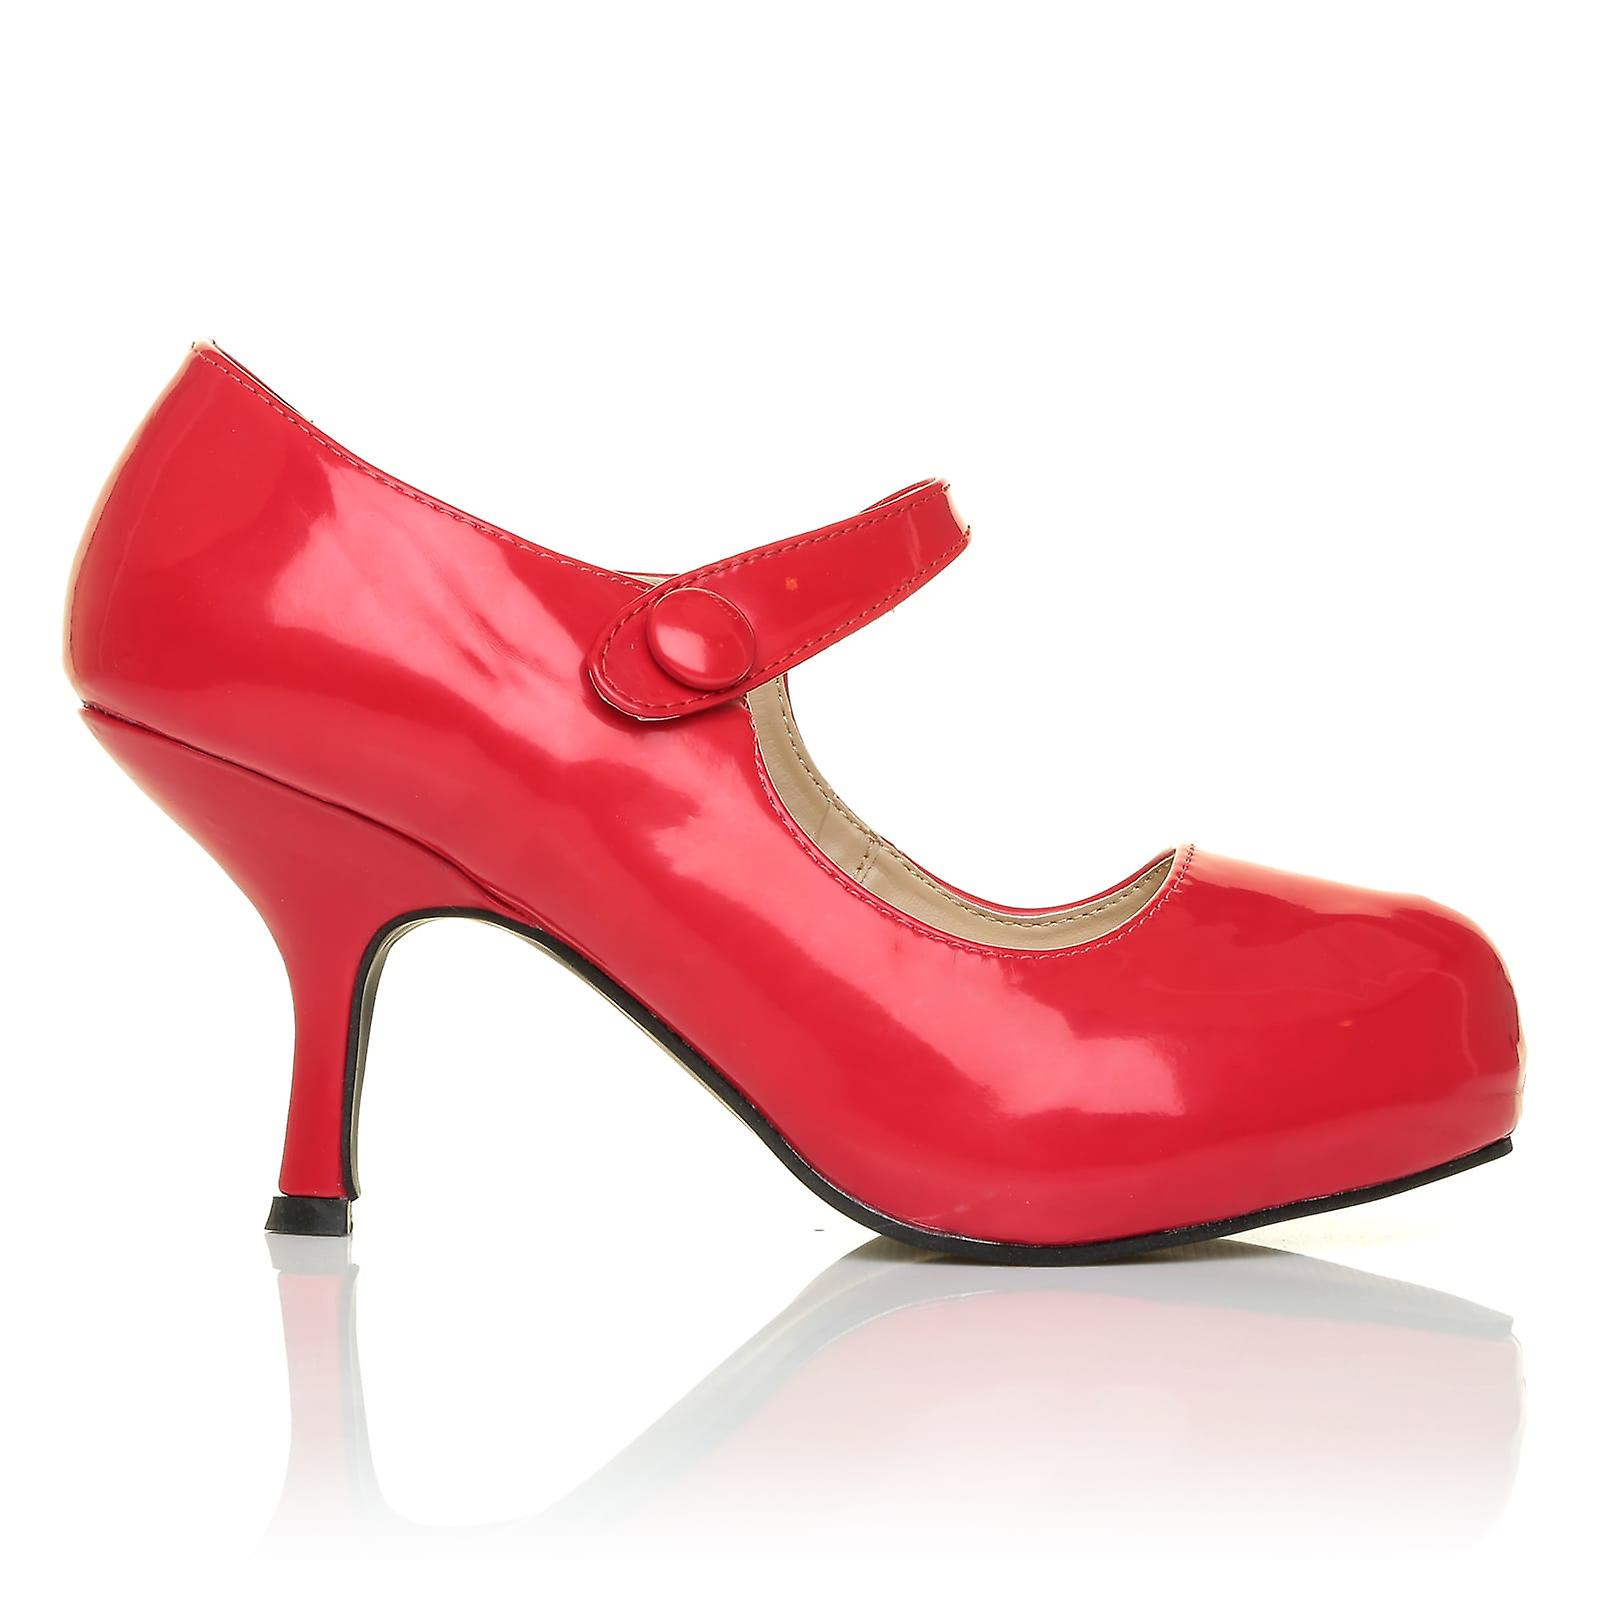 H213 Red Patent PU Concealed Leather Kitten Mid Heel Concealed PU Platforms Mary Jane Shoes b59f3a